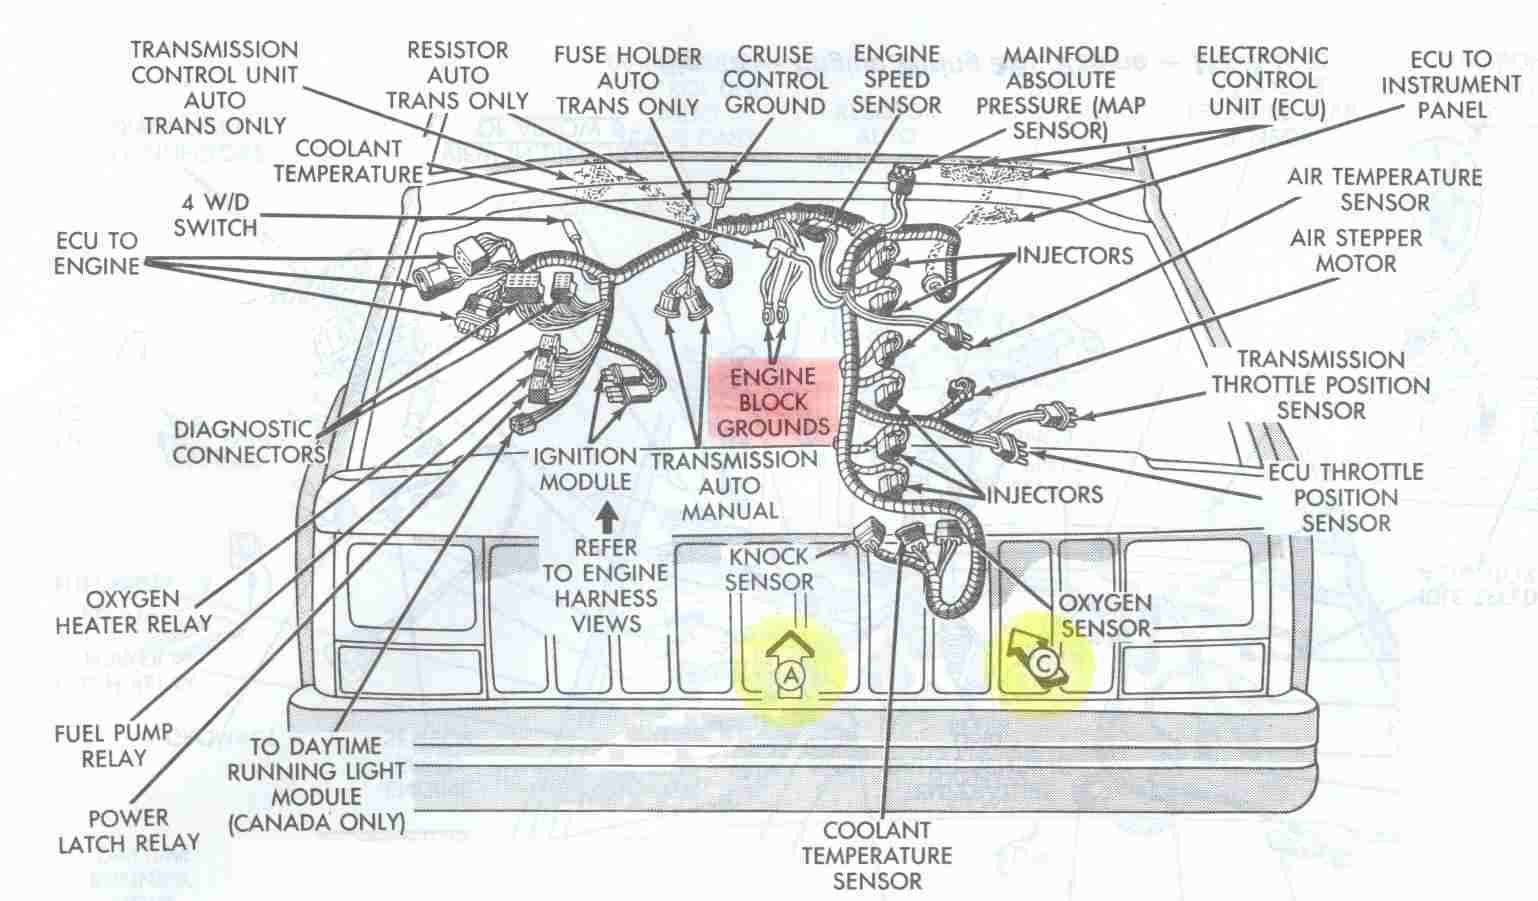 ab0134a7d9e021431187af597eb4aeca engine bay schematic showing major electrical ground points for 89 jeep cherokee wiring diagram at gsmportal.co